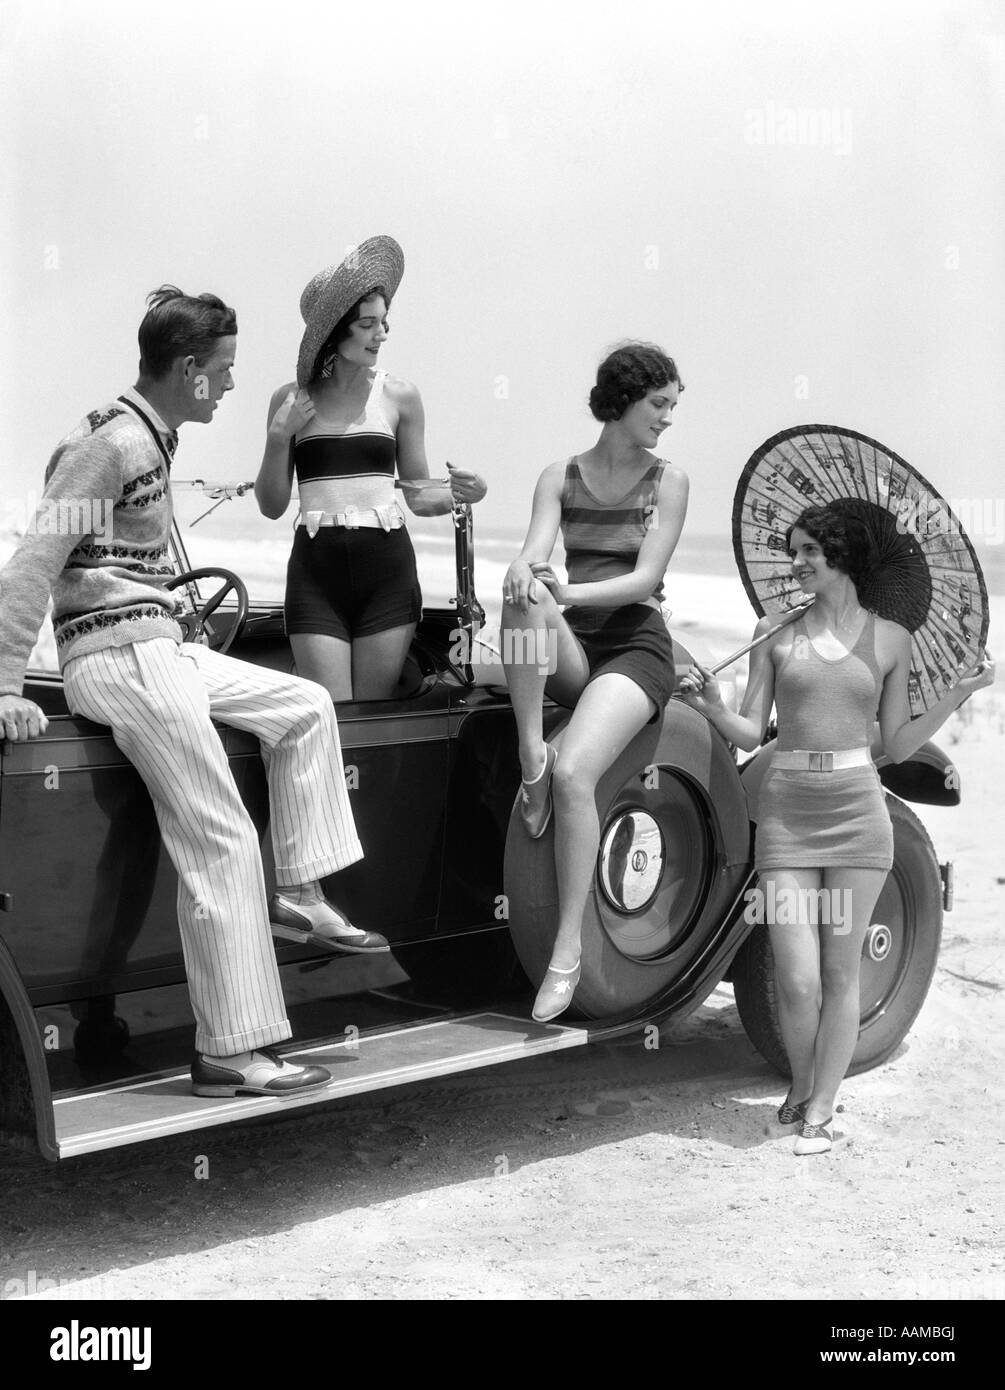 1920s 1930s Man And Three Women In Beach Clothes Or Bathing Suits